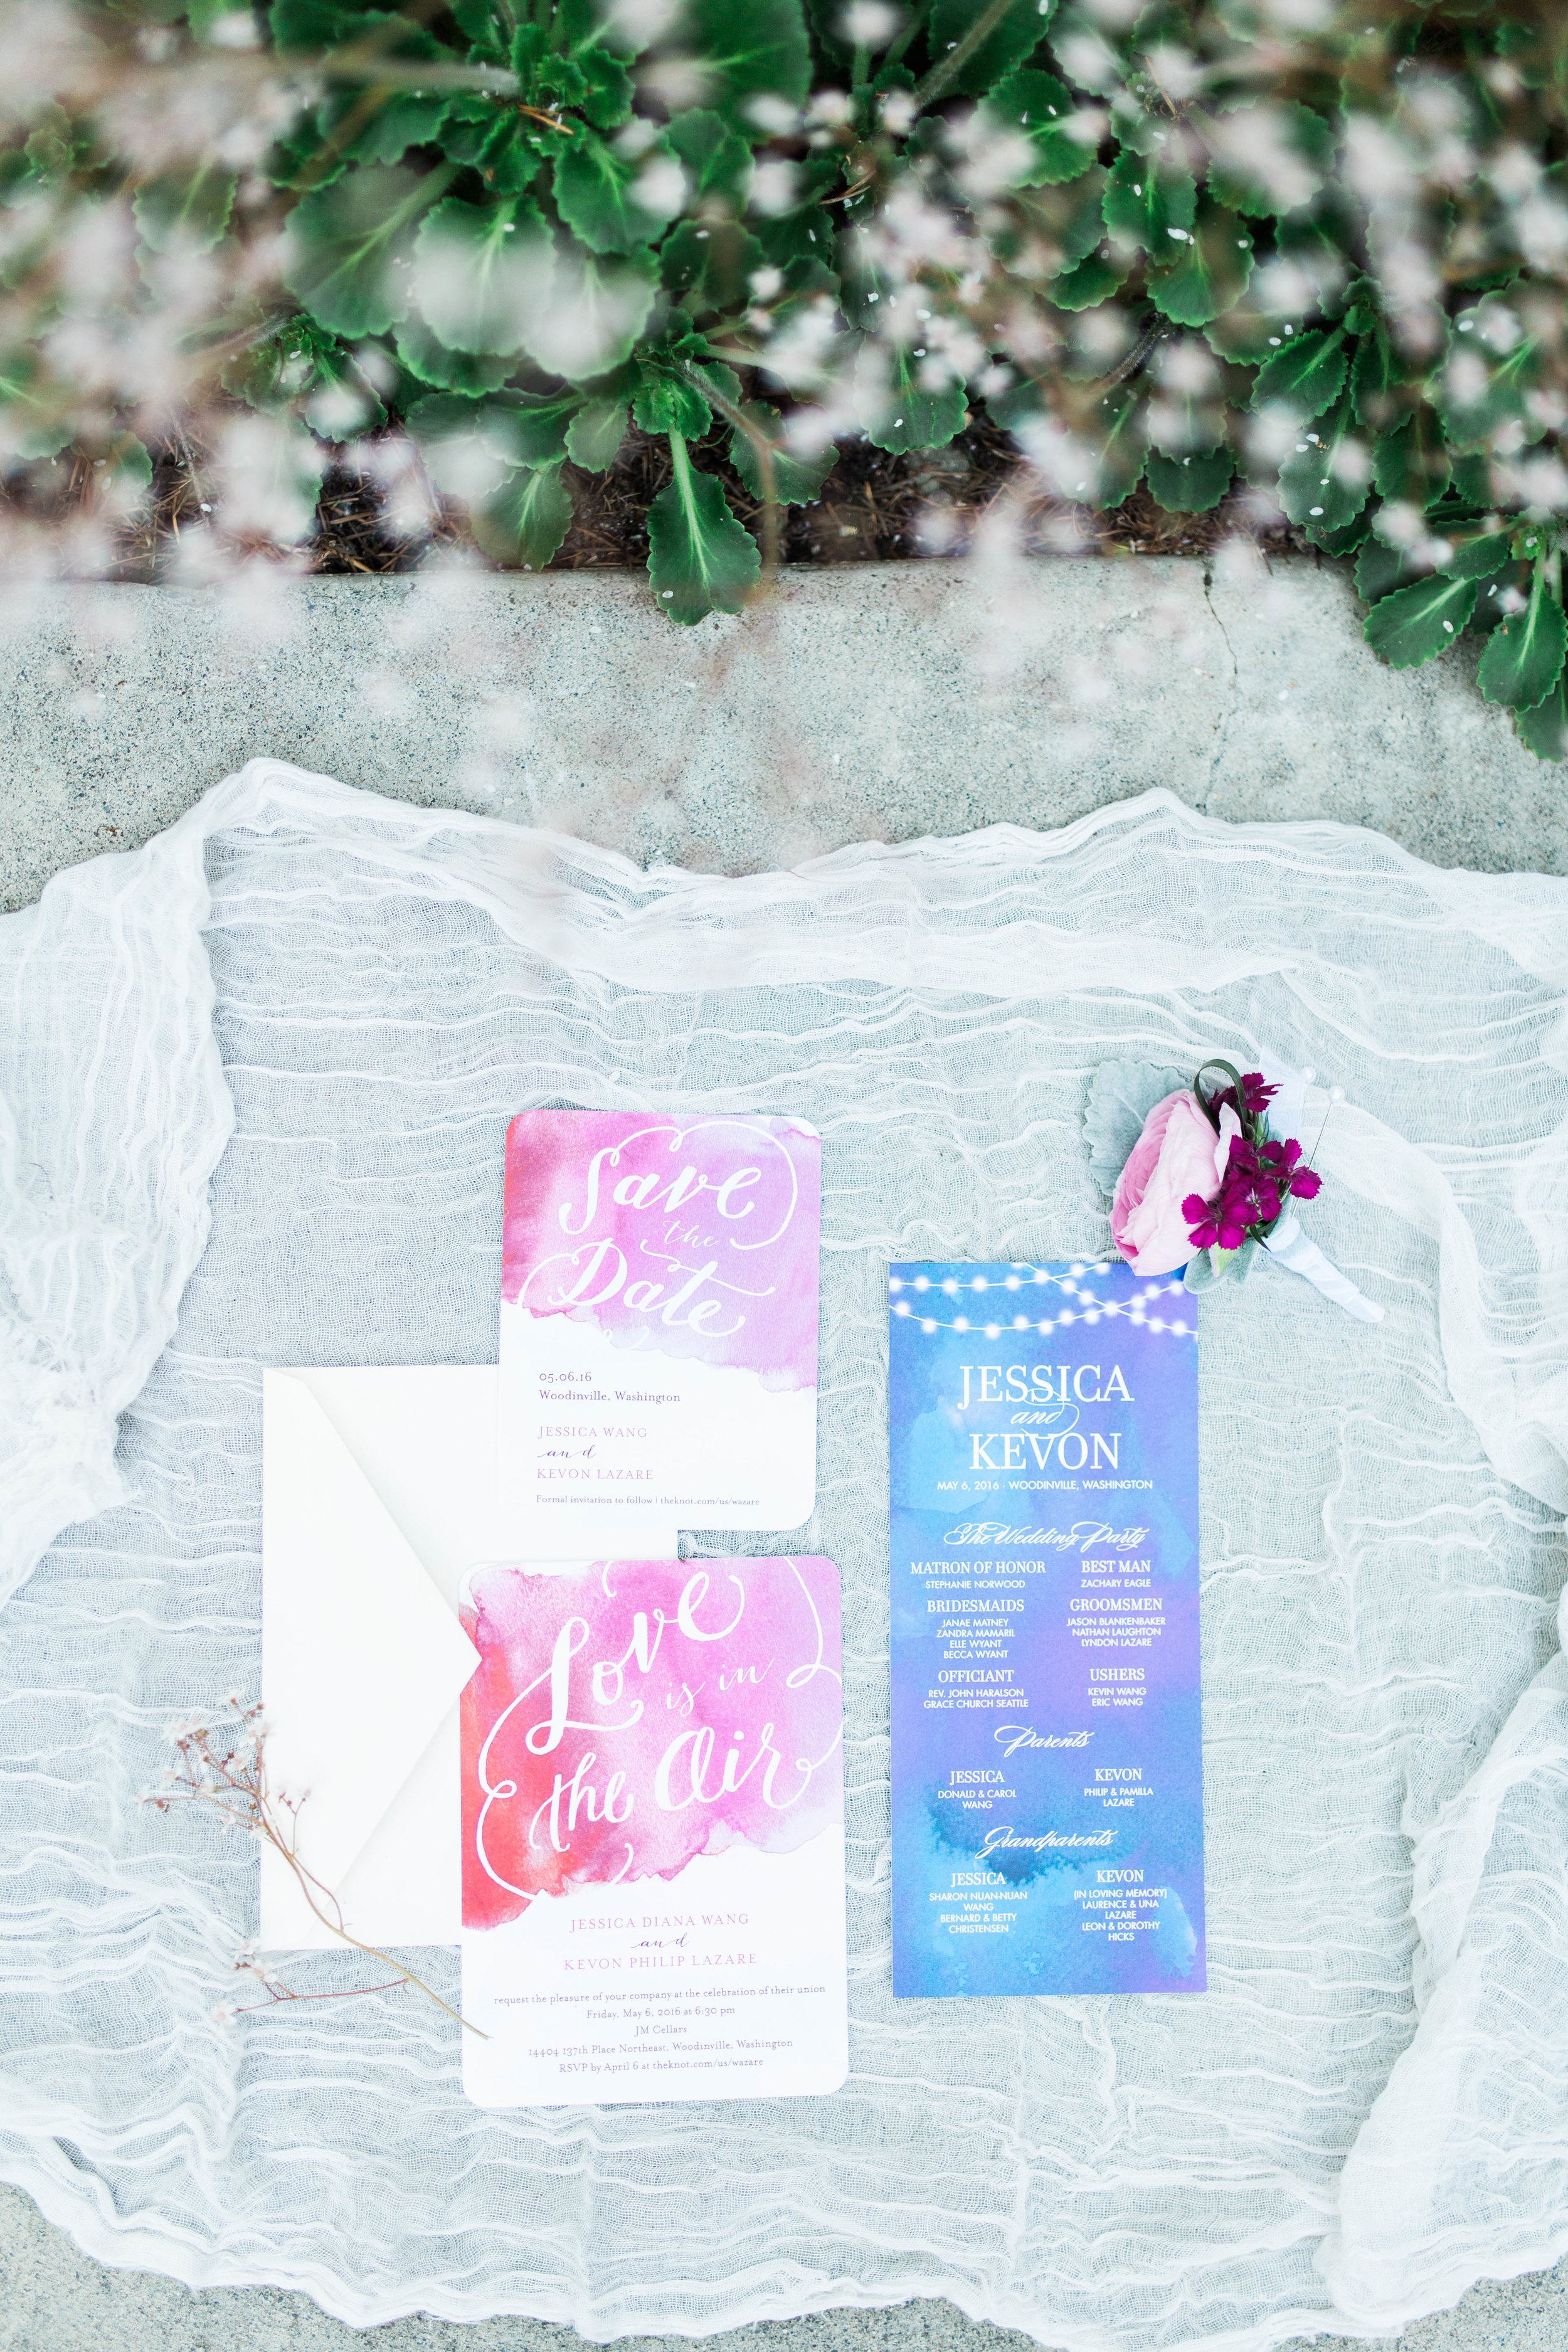 Wedding Planner Seattle | Wedding Wise | Kerry Jeanne Photography | JM Cellars Wedding | Tropical wedding invitation suite